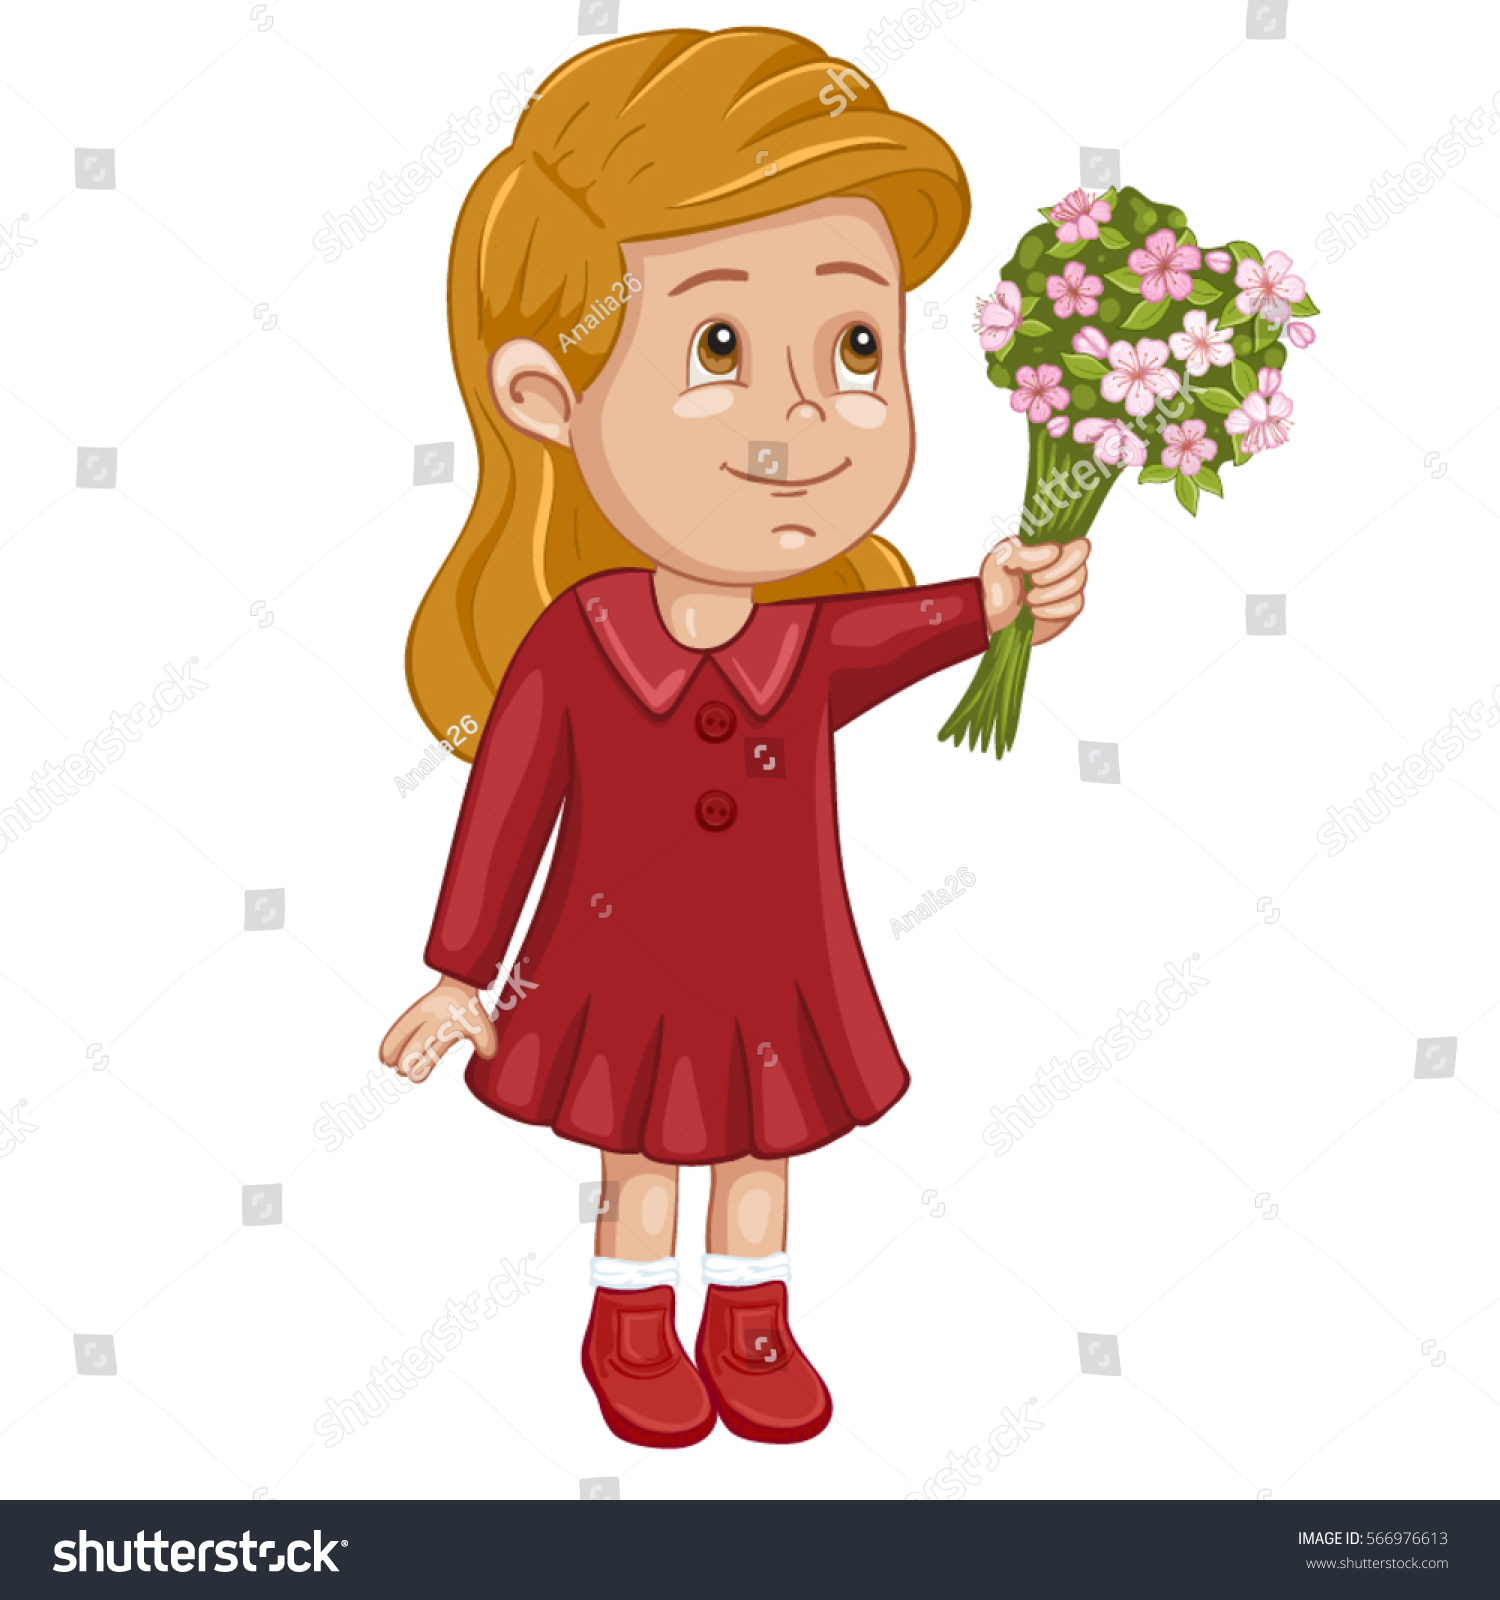 Illustration cute girl beautiful bouquet flowers stock vector illustration of a cute girl with a beautiful bouquet of flowers izmirmasajfo